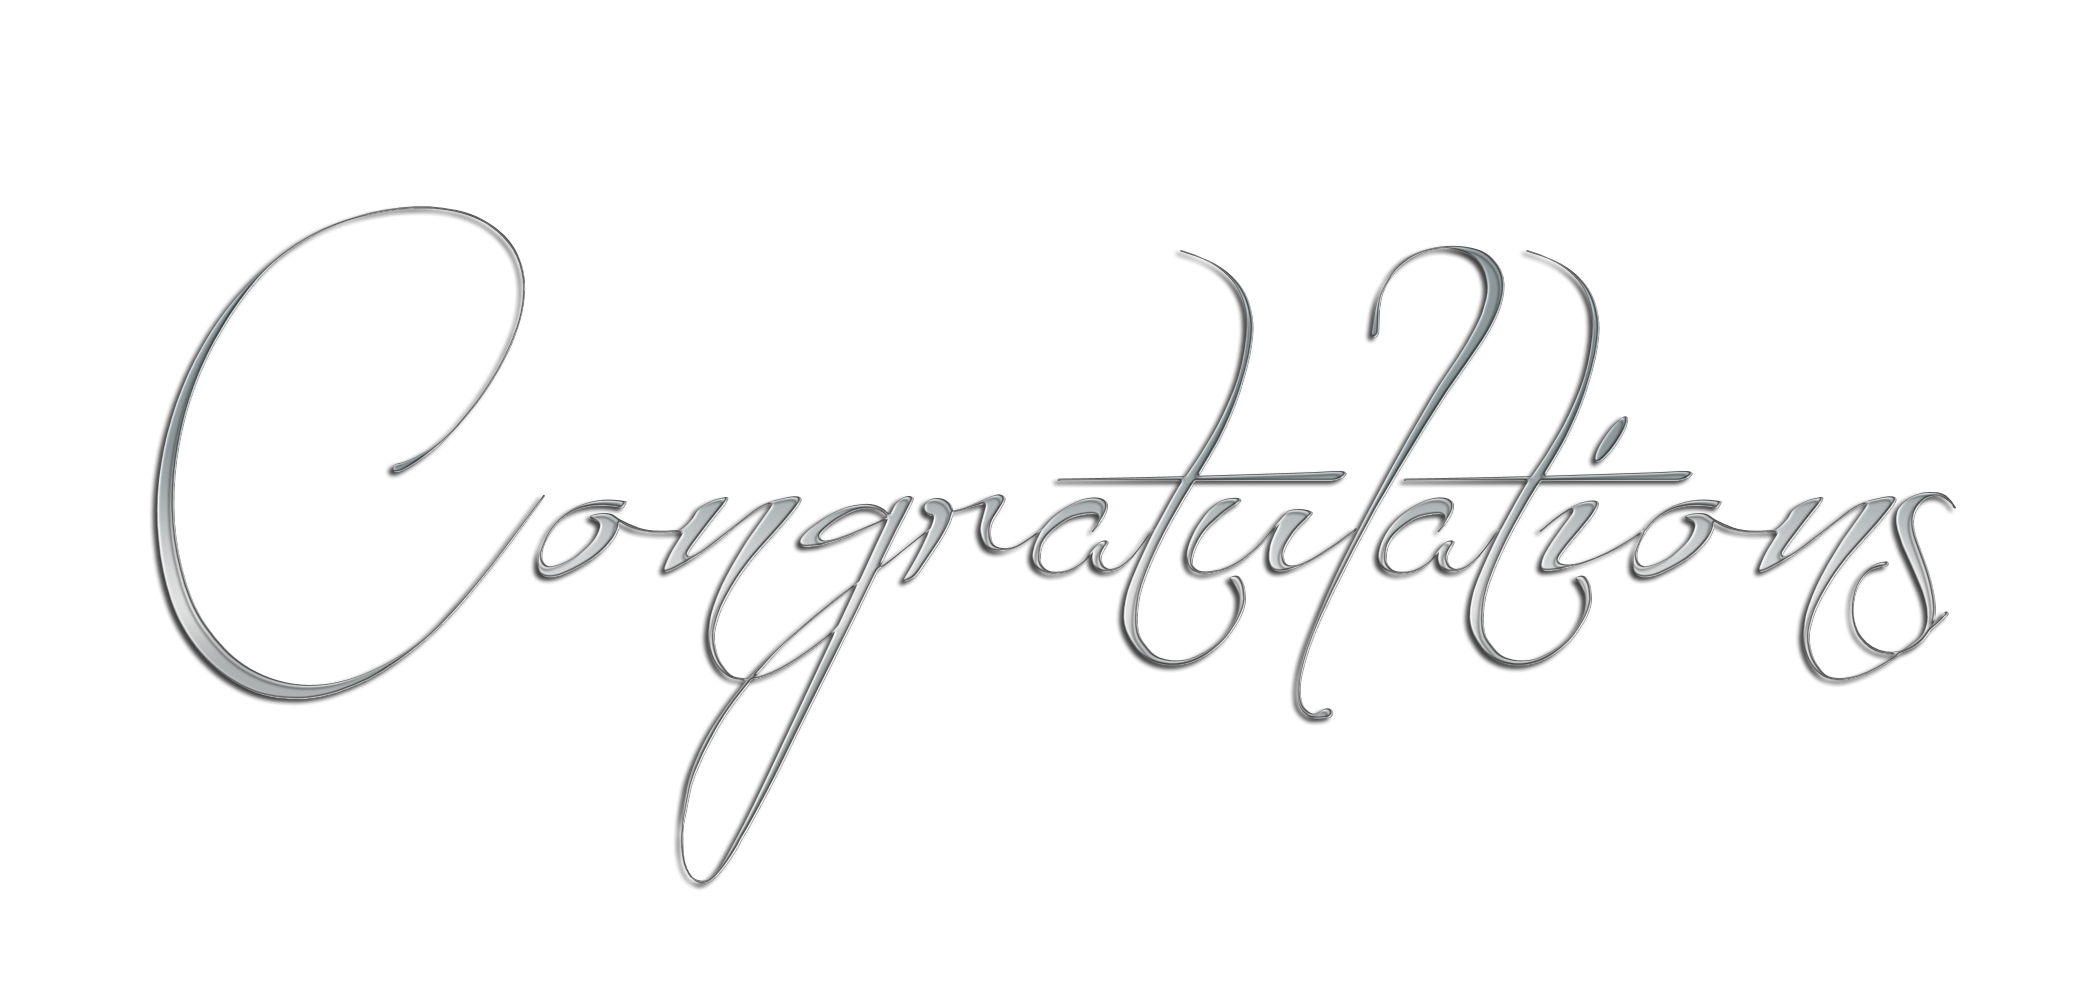 Transparent png pictures free. Congratulations clipart many